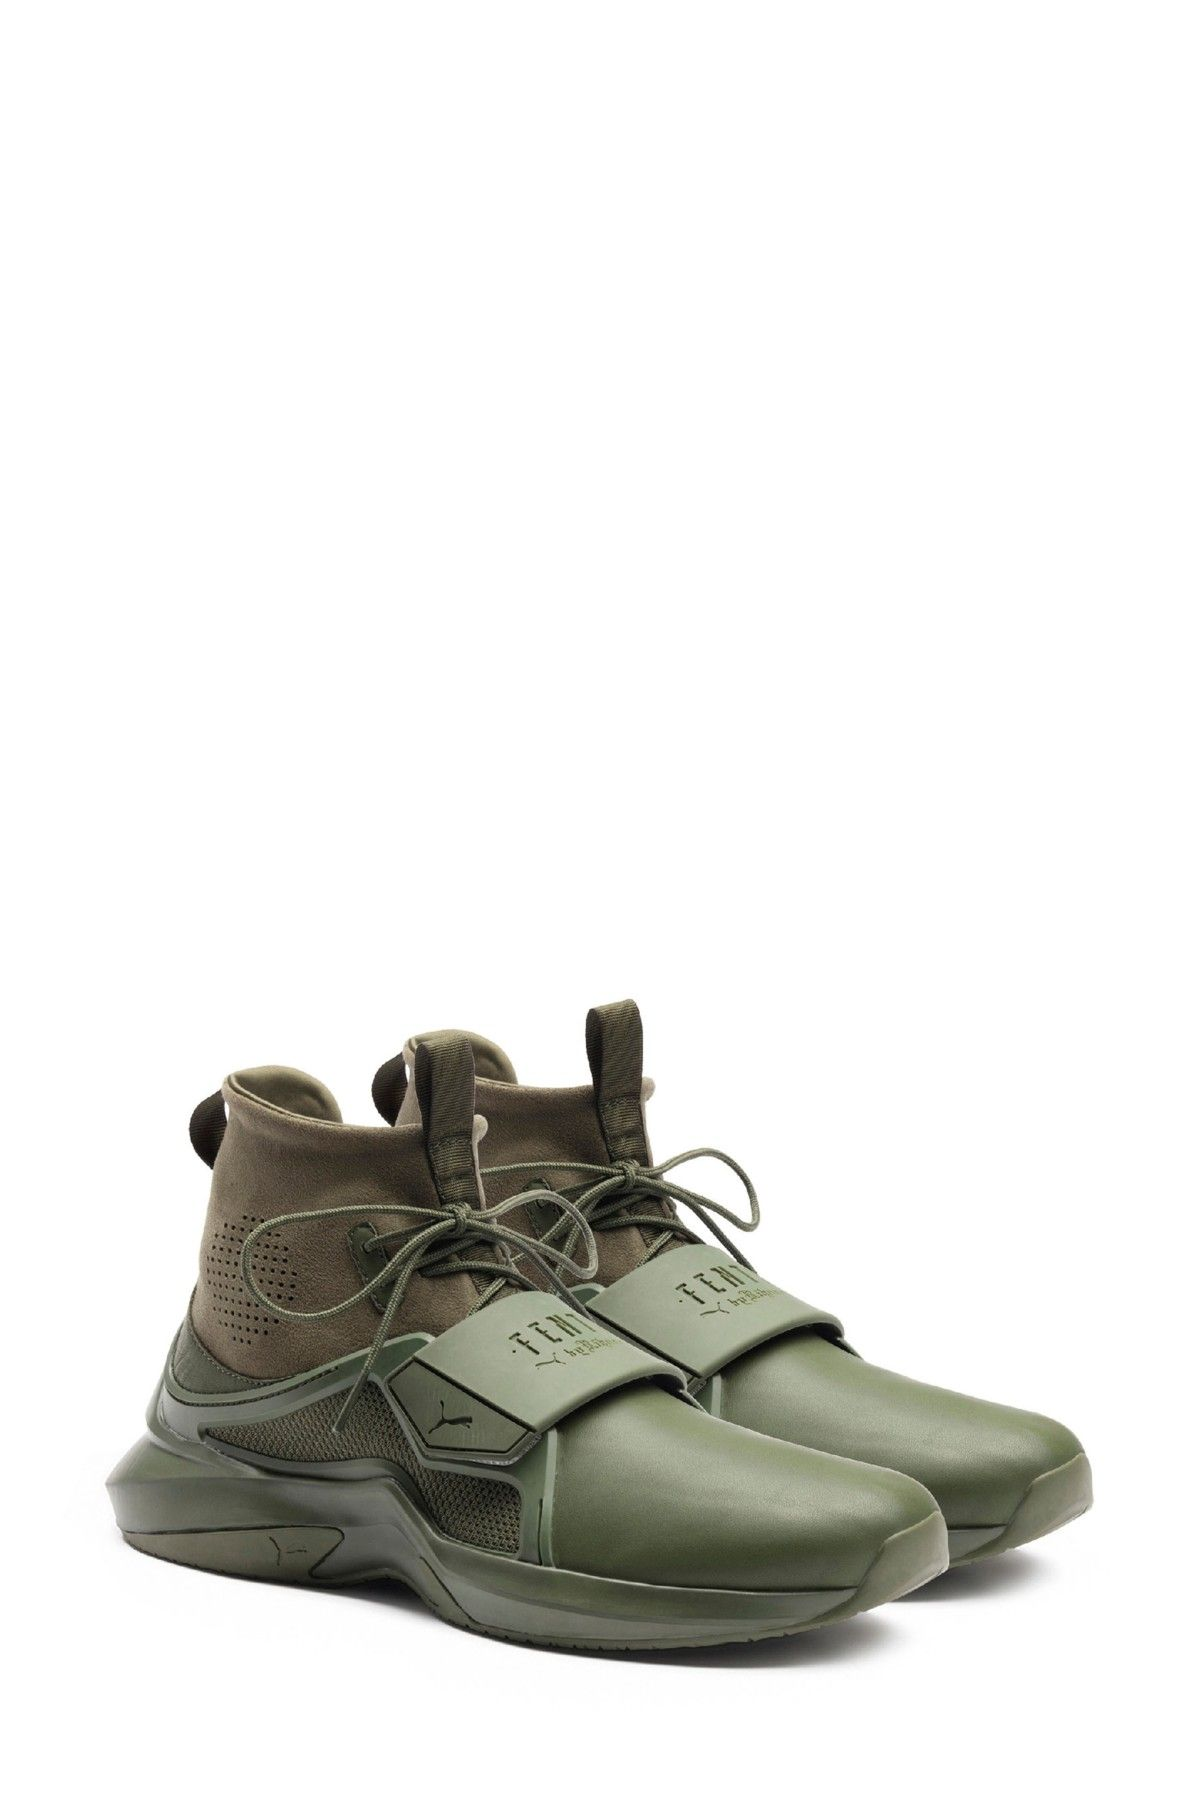 new concept 8ed52 d99d4 PUMA   FENTY PUMA by Rihanna Trainer Sneaker   Outfits in ...